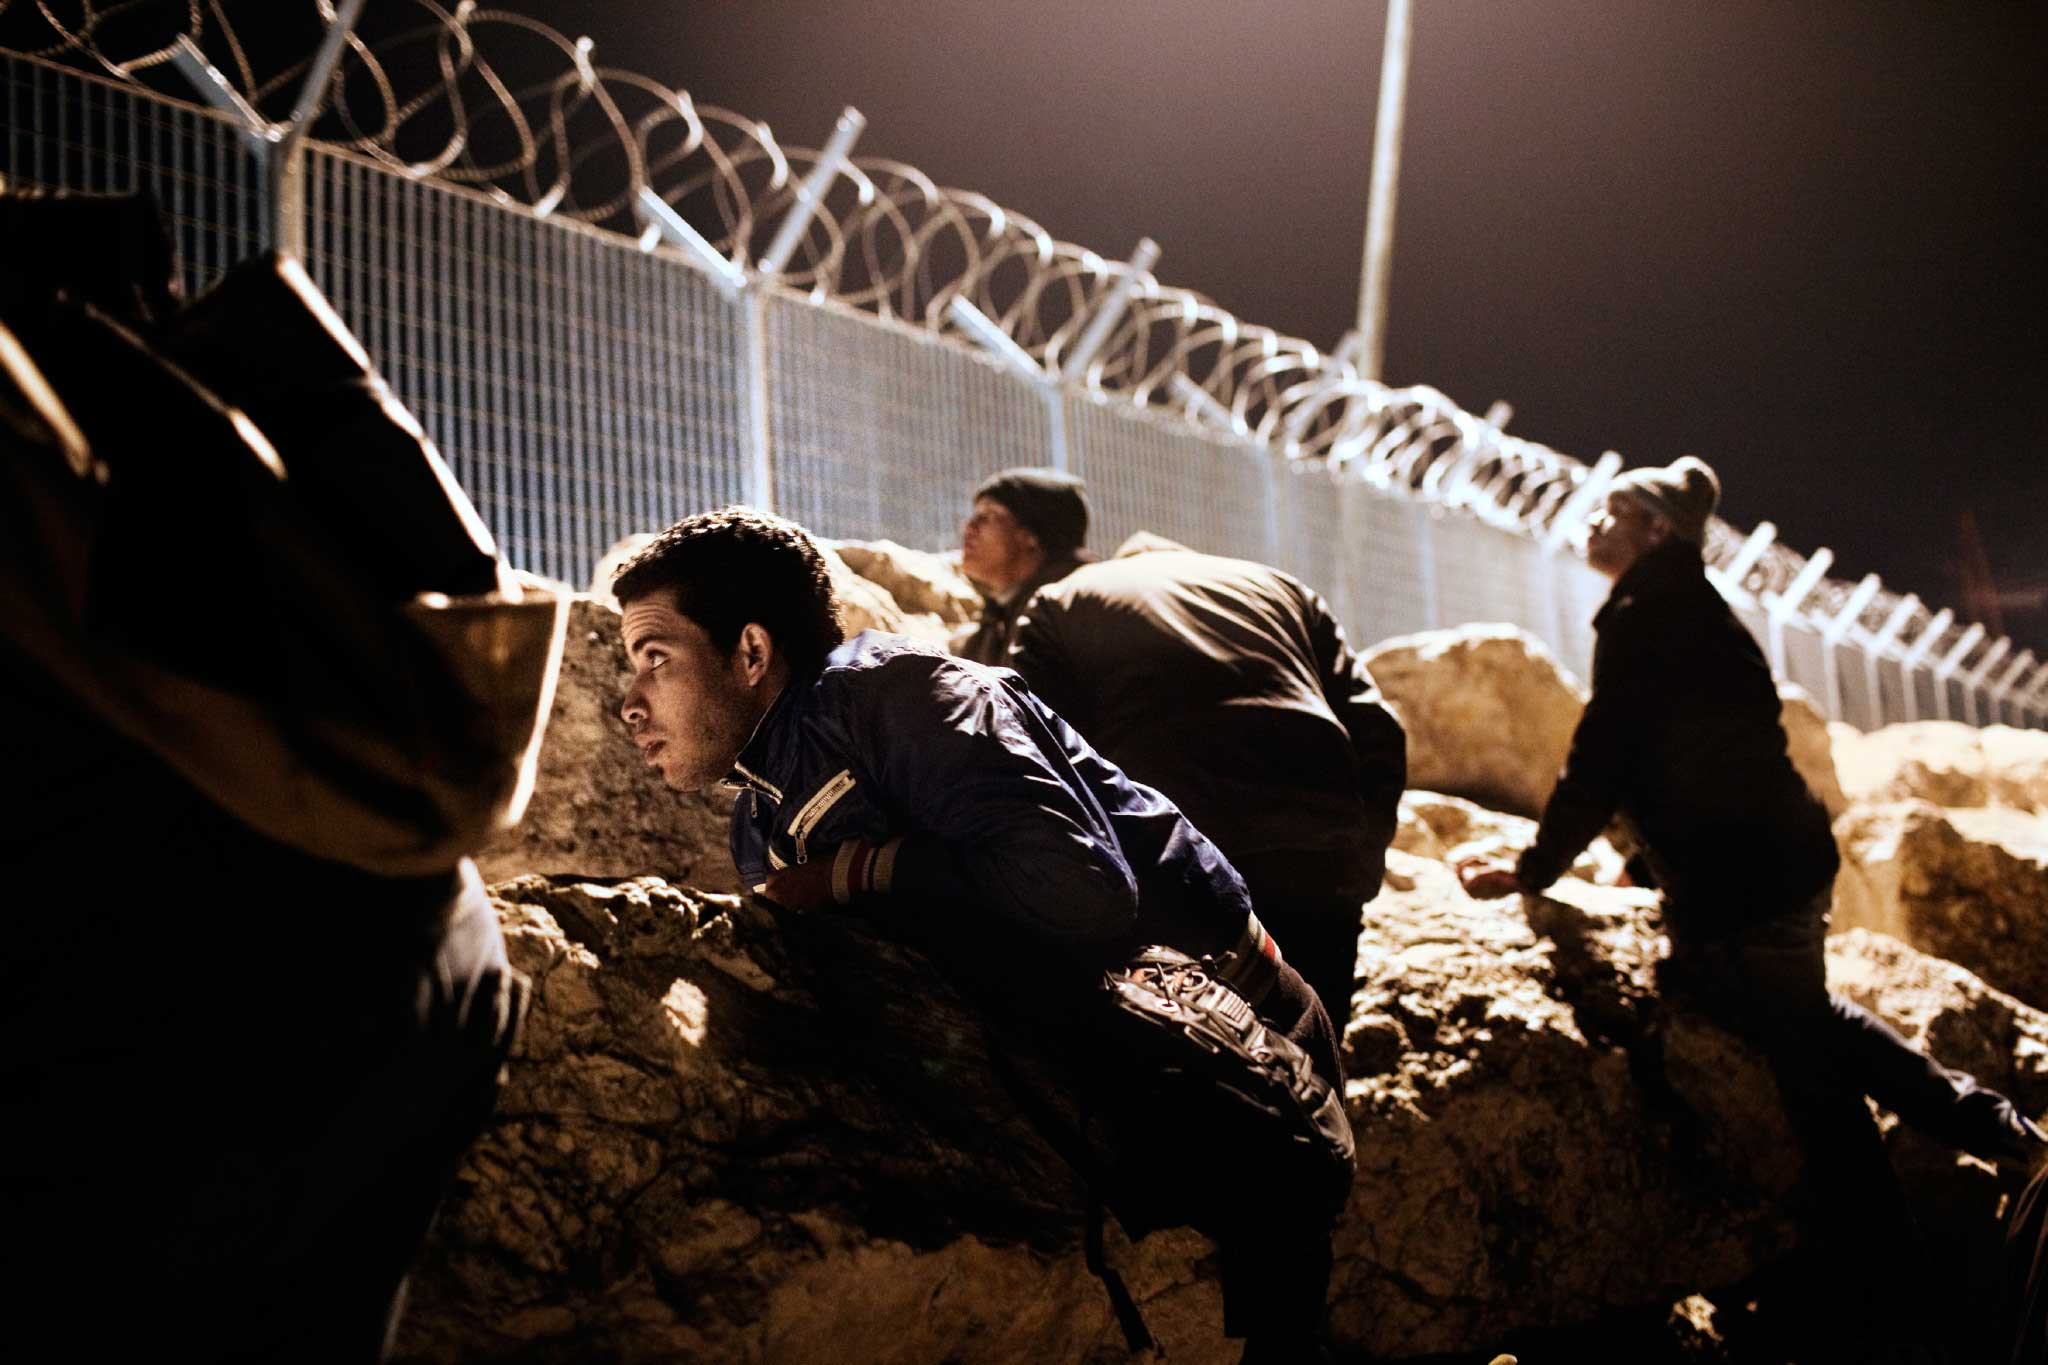 Mohamed from Morocco and his friends hide behind the rocks at                                   the port, waiting for the right moment to illegally board a ship to Italy from Corinth, Greece, Feb. 21, 2012. In Greece, more than 99.5 percent of requests for political asylum are rejected, so these young people are forced to hide from the authorities.